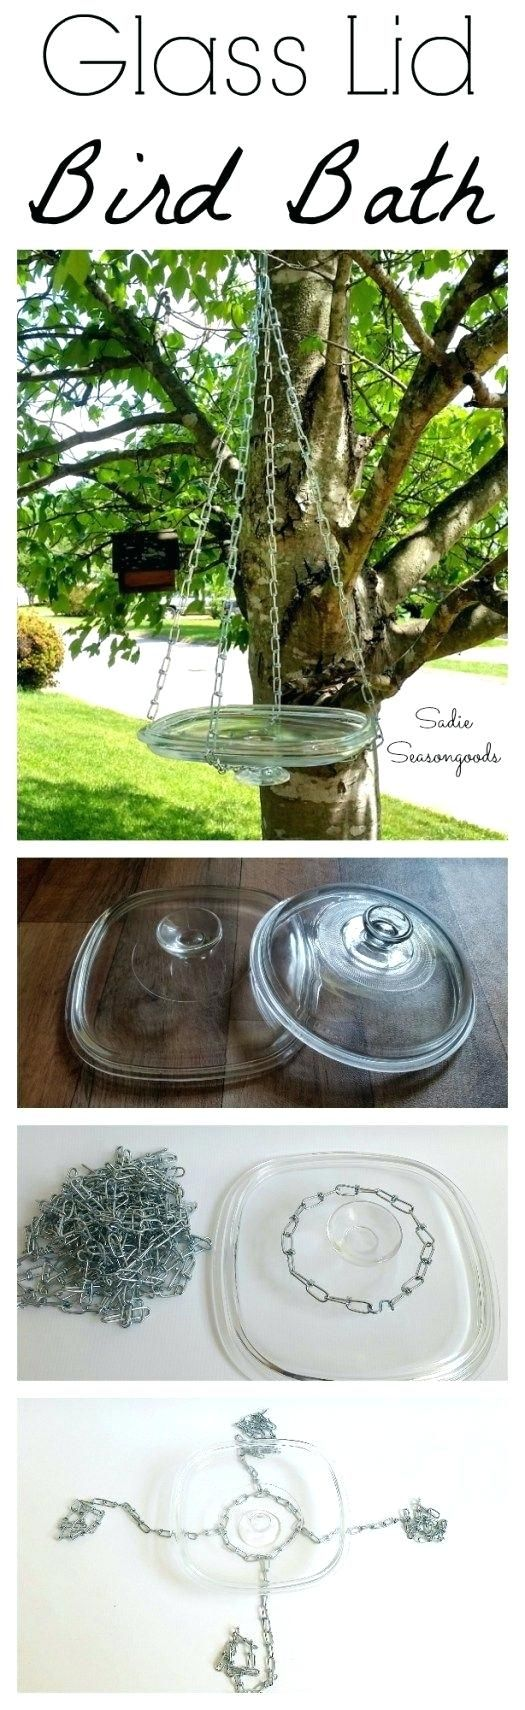 Bird Water Feeder Glass Casserole Dish Lids Are Always A Thrift Store Staple So Why Not Repurpose One Into A Diy Hanging Bird Bath Or Feeder With This Tutorial Humming Bird Feeder